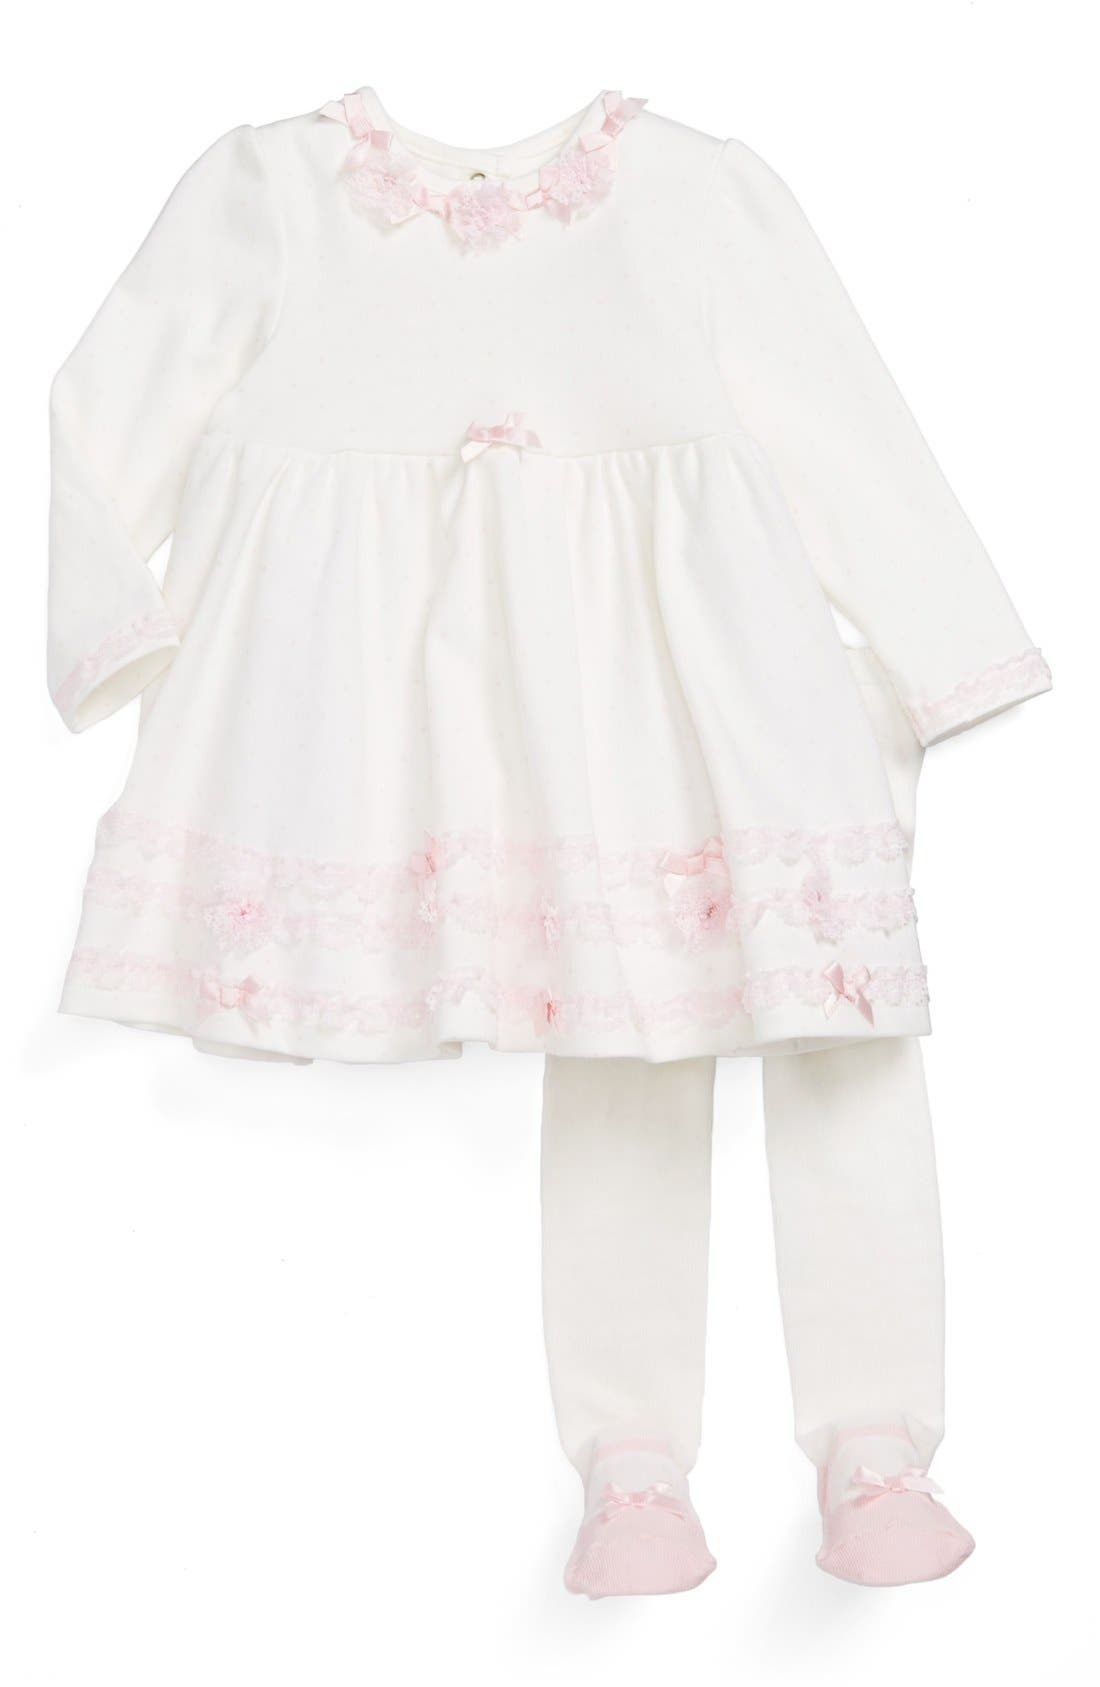 Alternate Image 1 Selected - Little Me Long Sleeve Lace Trim Dress & Footie Leggings (Baby Girls)